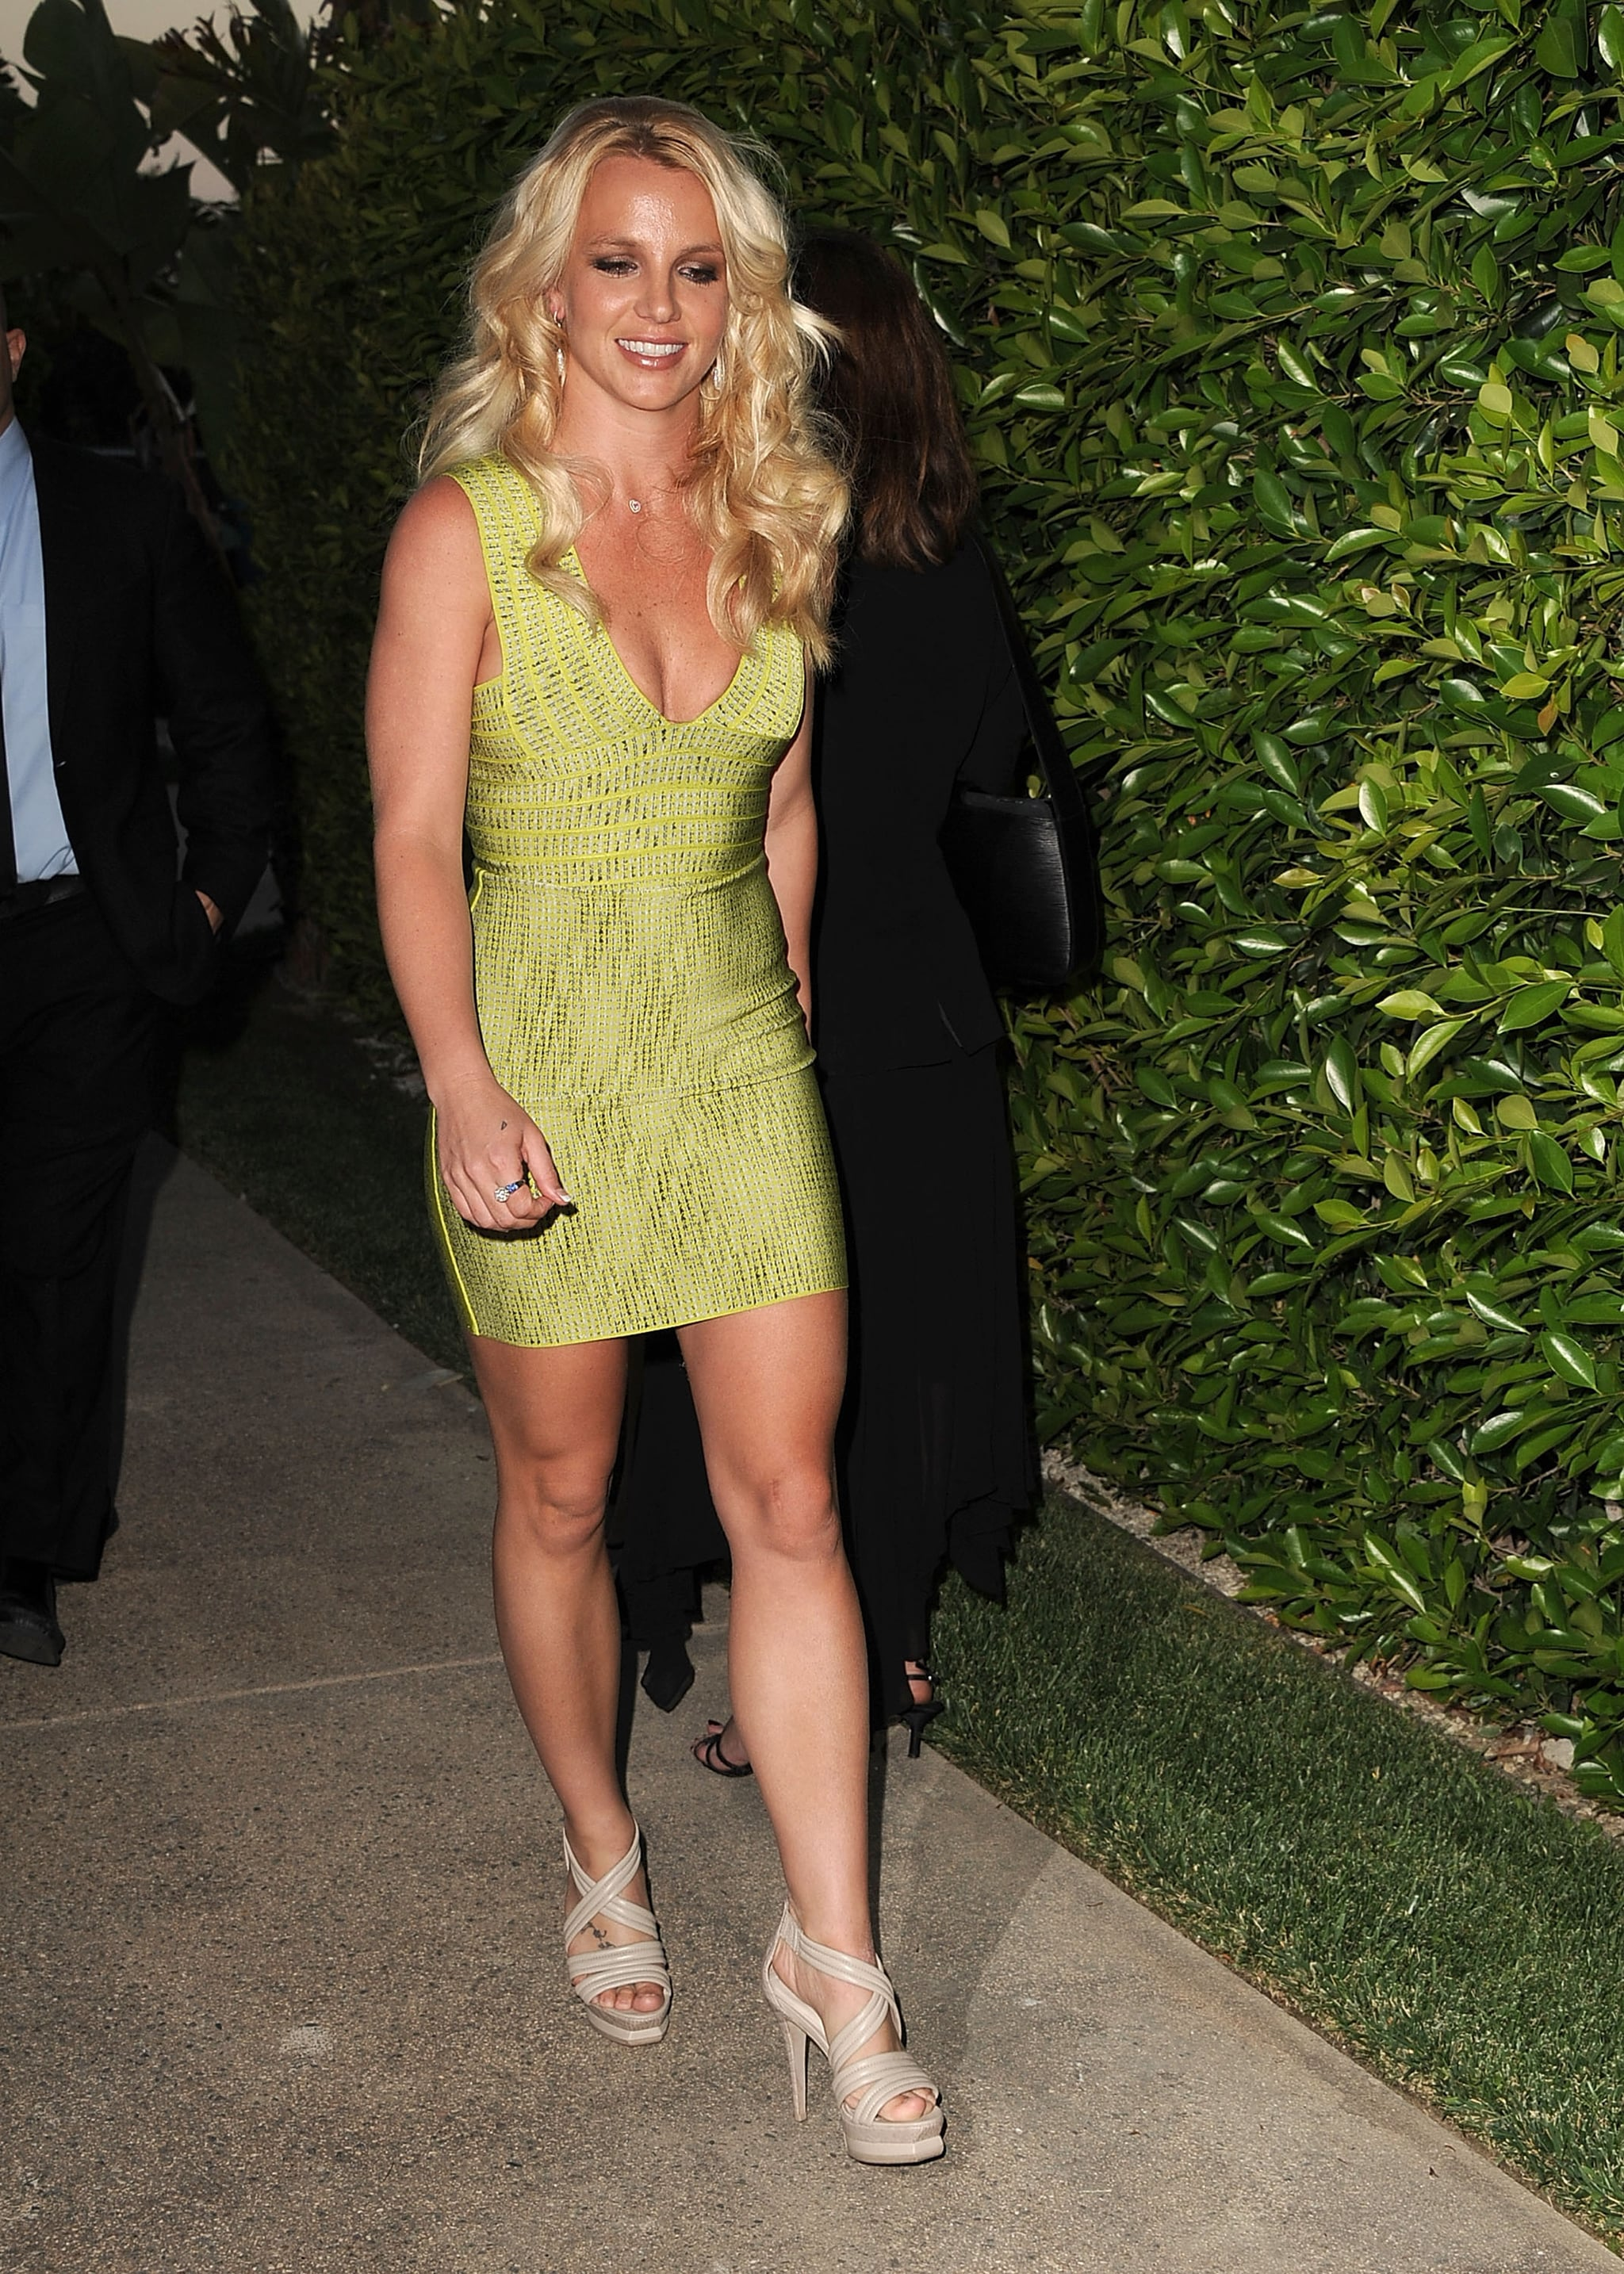 pictures of britney spears in tight green dress with jason